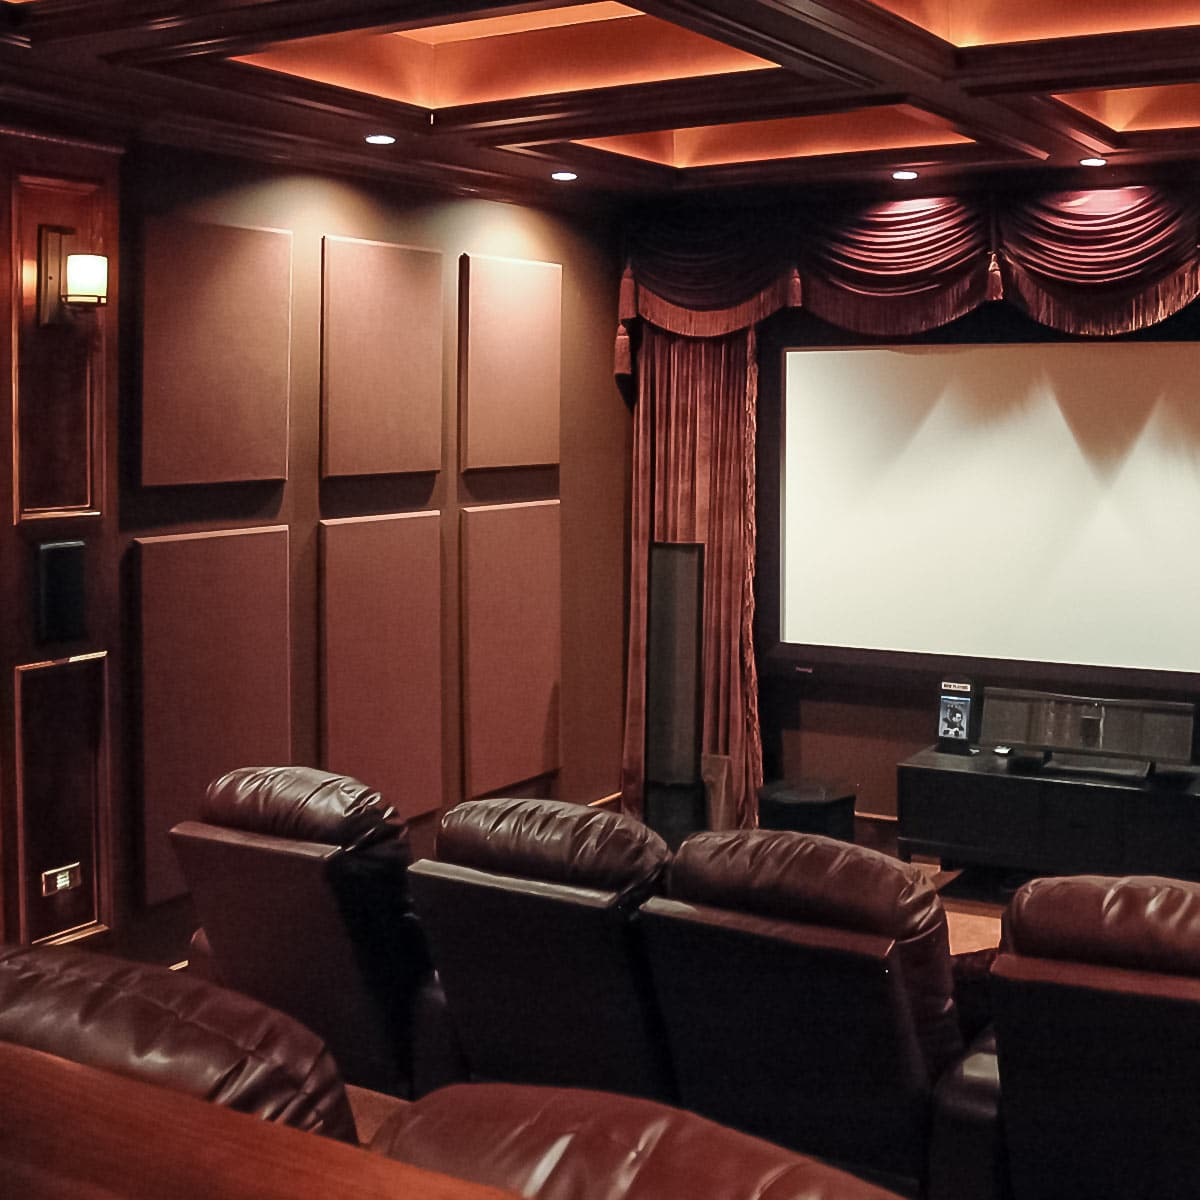 Jeff Autoru0027s Home Theater Using Absorptive SoundSued Acoustic Wall Panels.